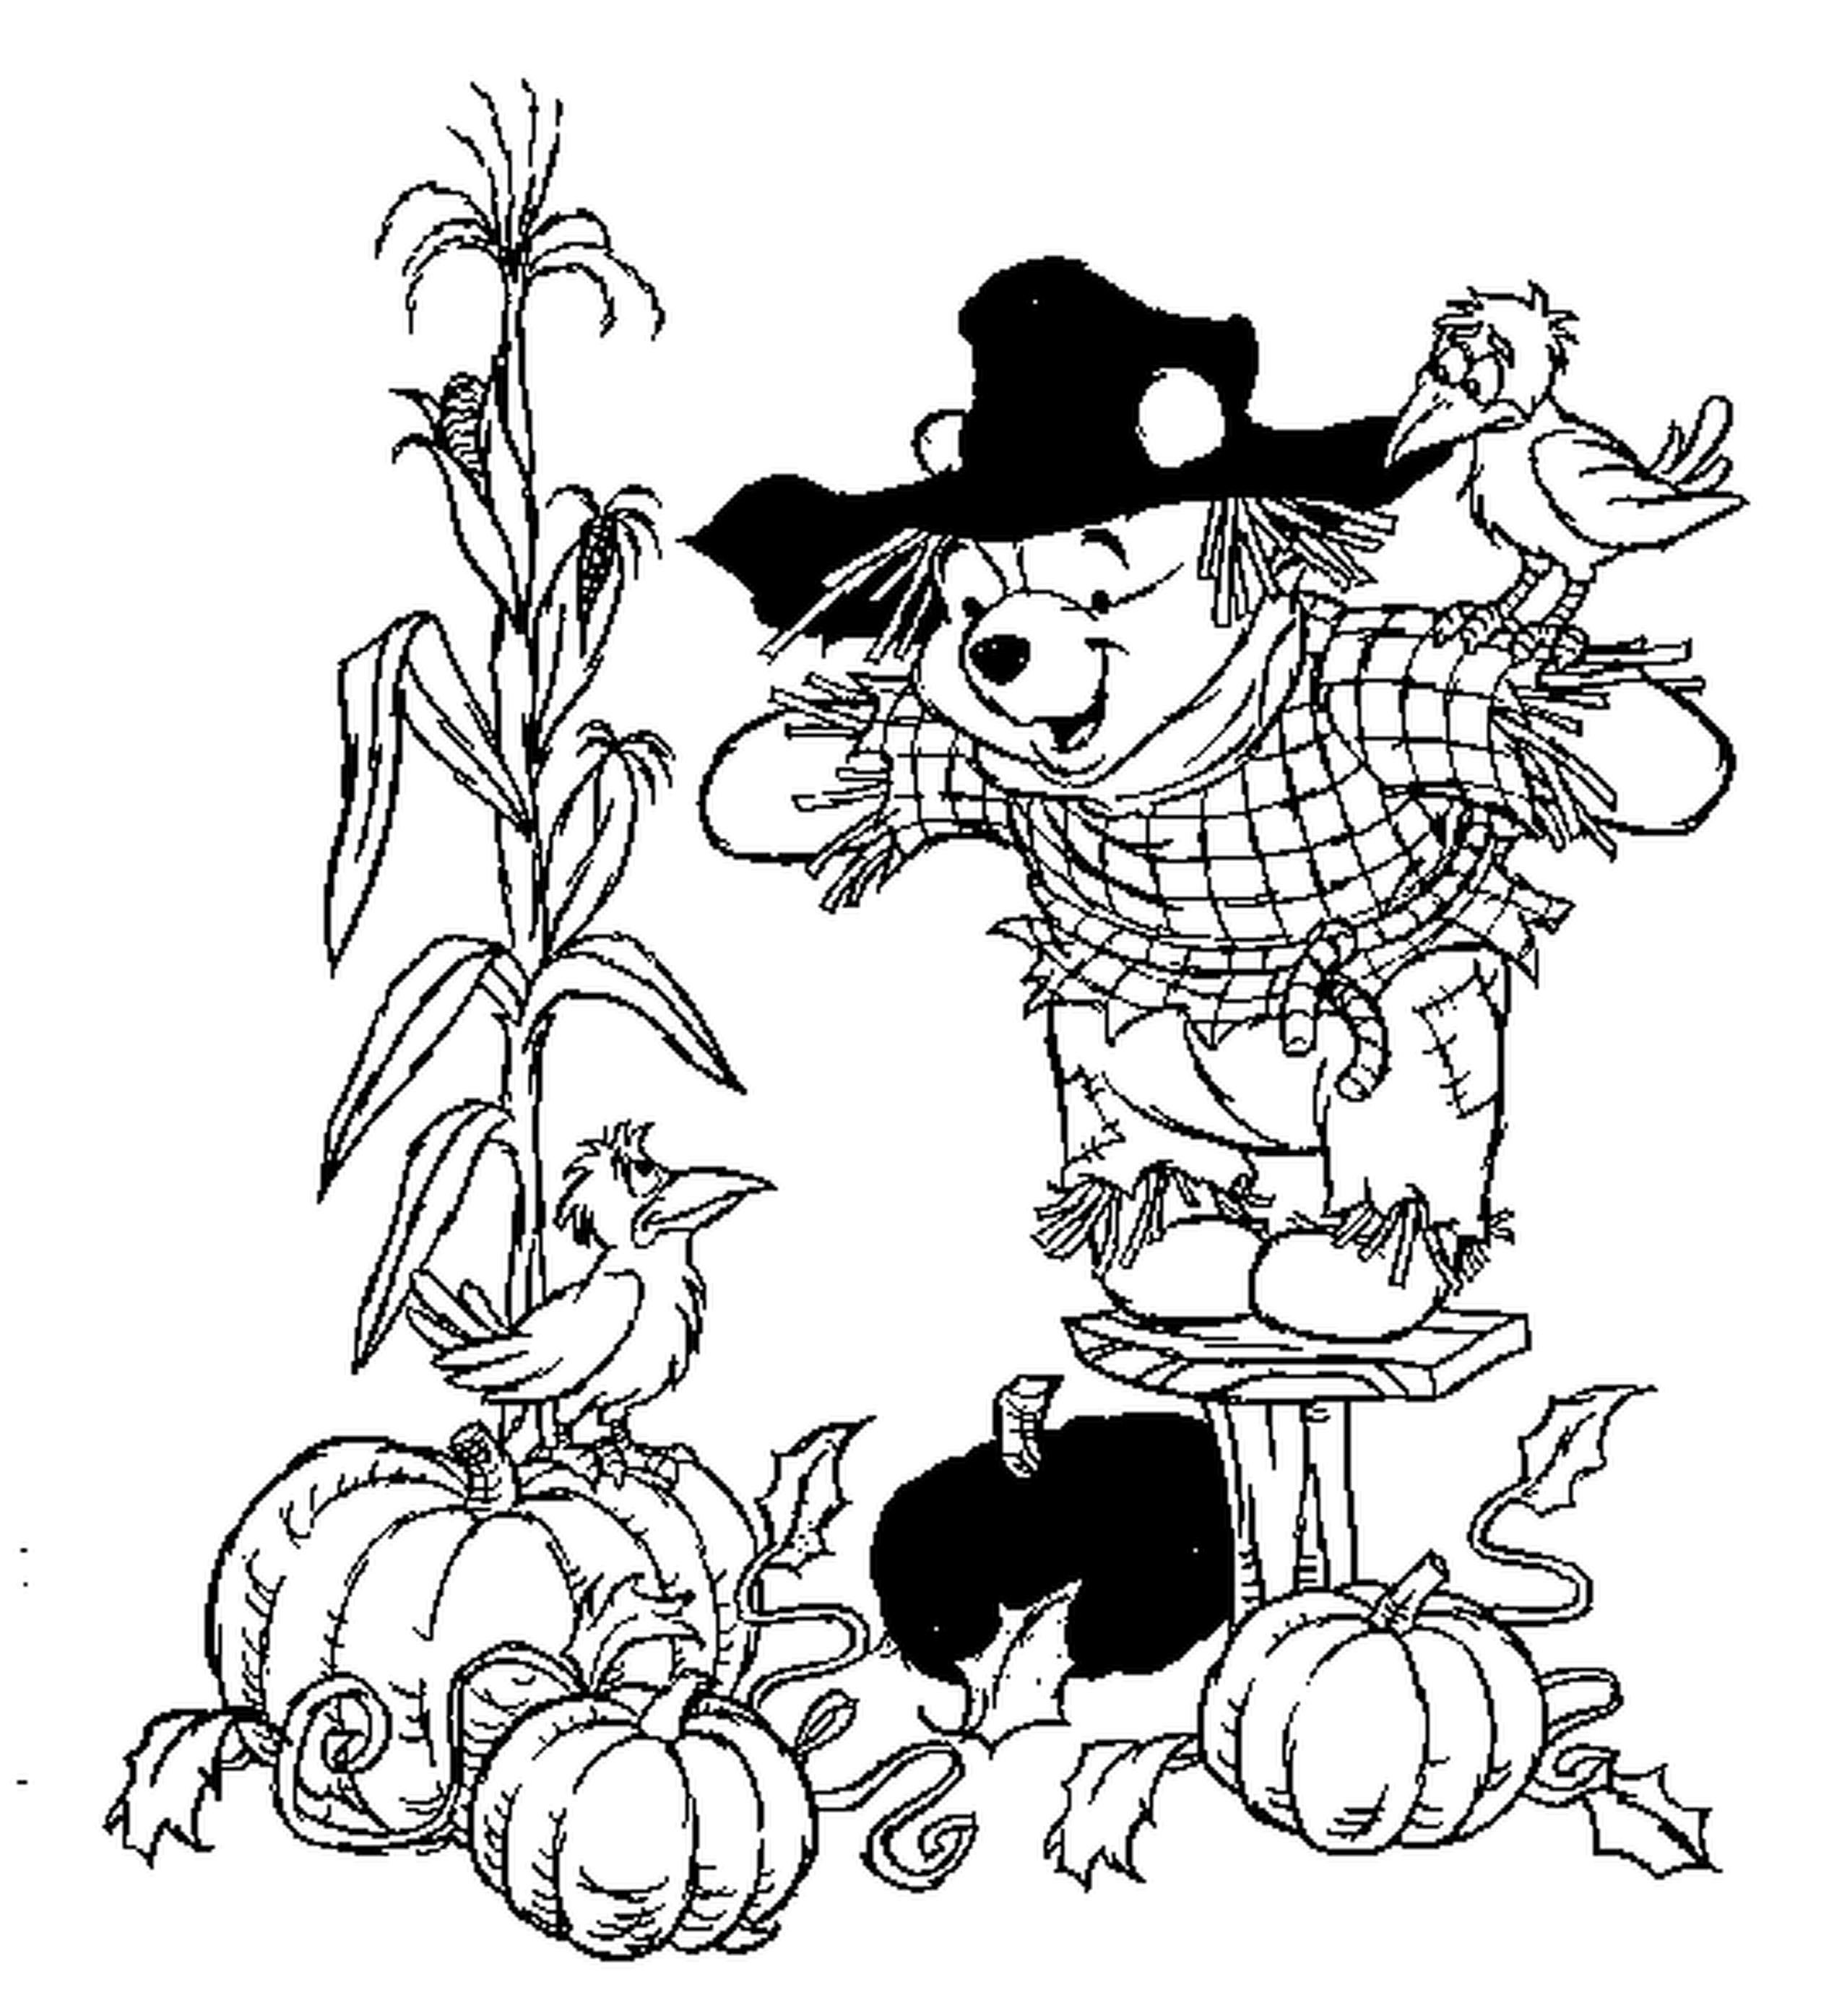 Free coloring pages for halloween and fall - Coloring Pages Precious Moments Kids Free Fall Activity List Hanna